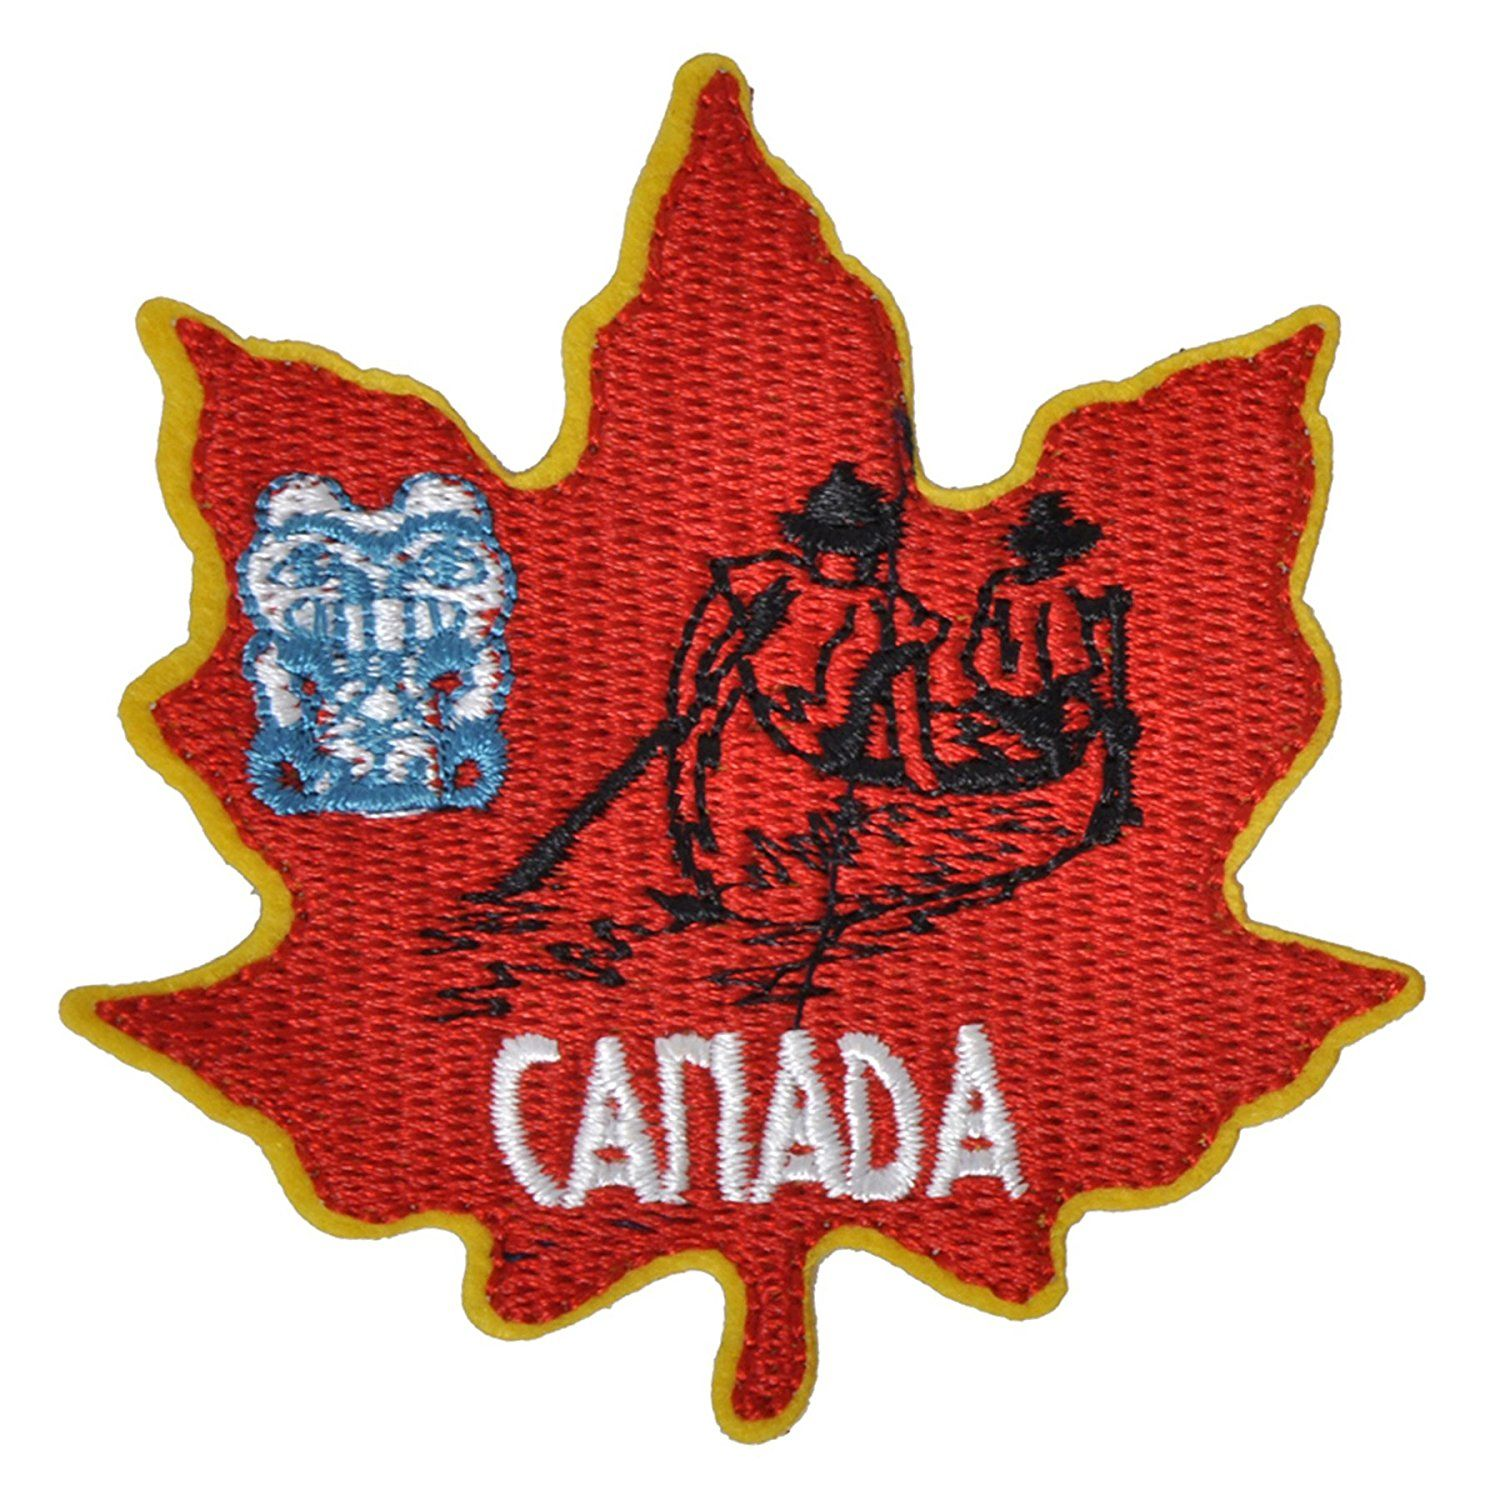 Canada Iron On Or Sew On Patch Perfect For Your Jean Jacket Travel Bag Back Pack Or Wherever For P Sew On Patches Personalized Stocking Stuffers Patches